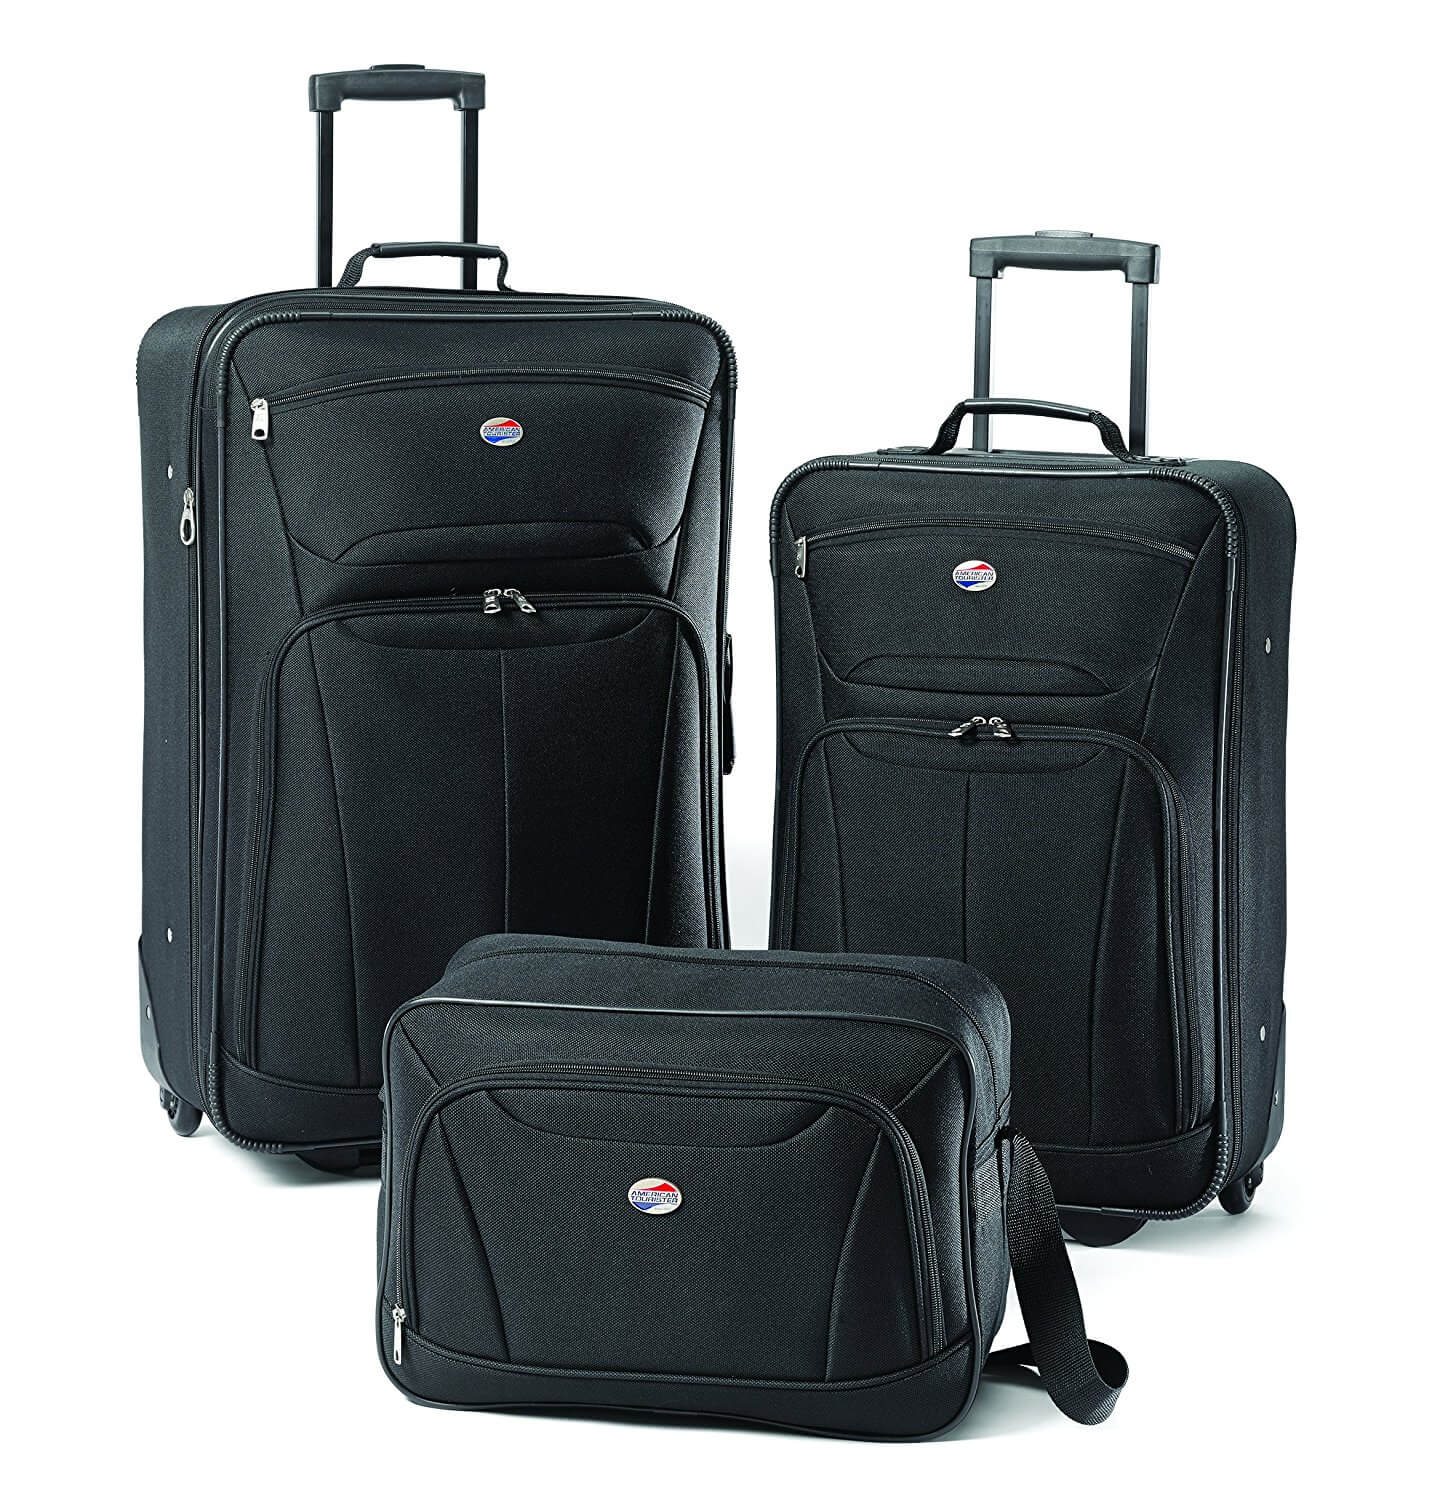 American Tourister Travel Bags Best Price